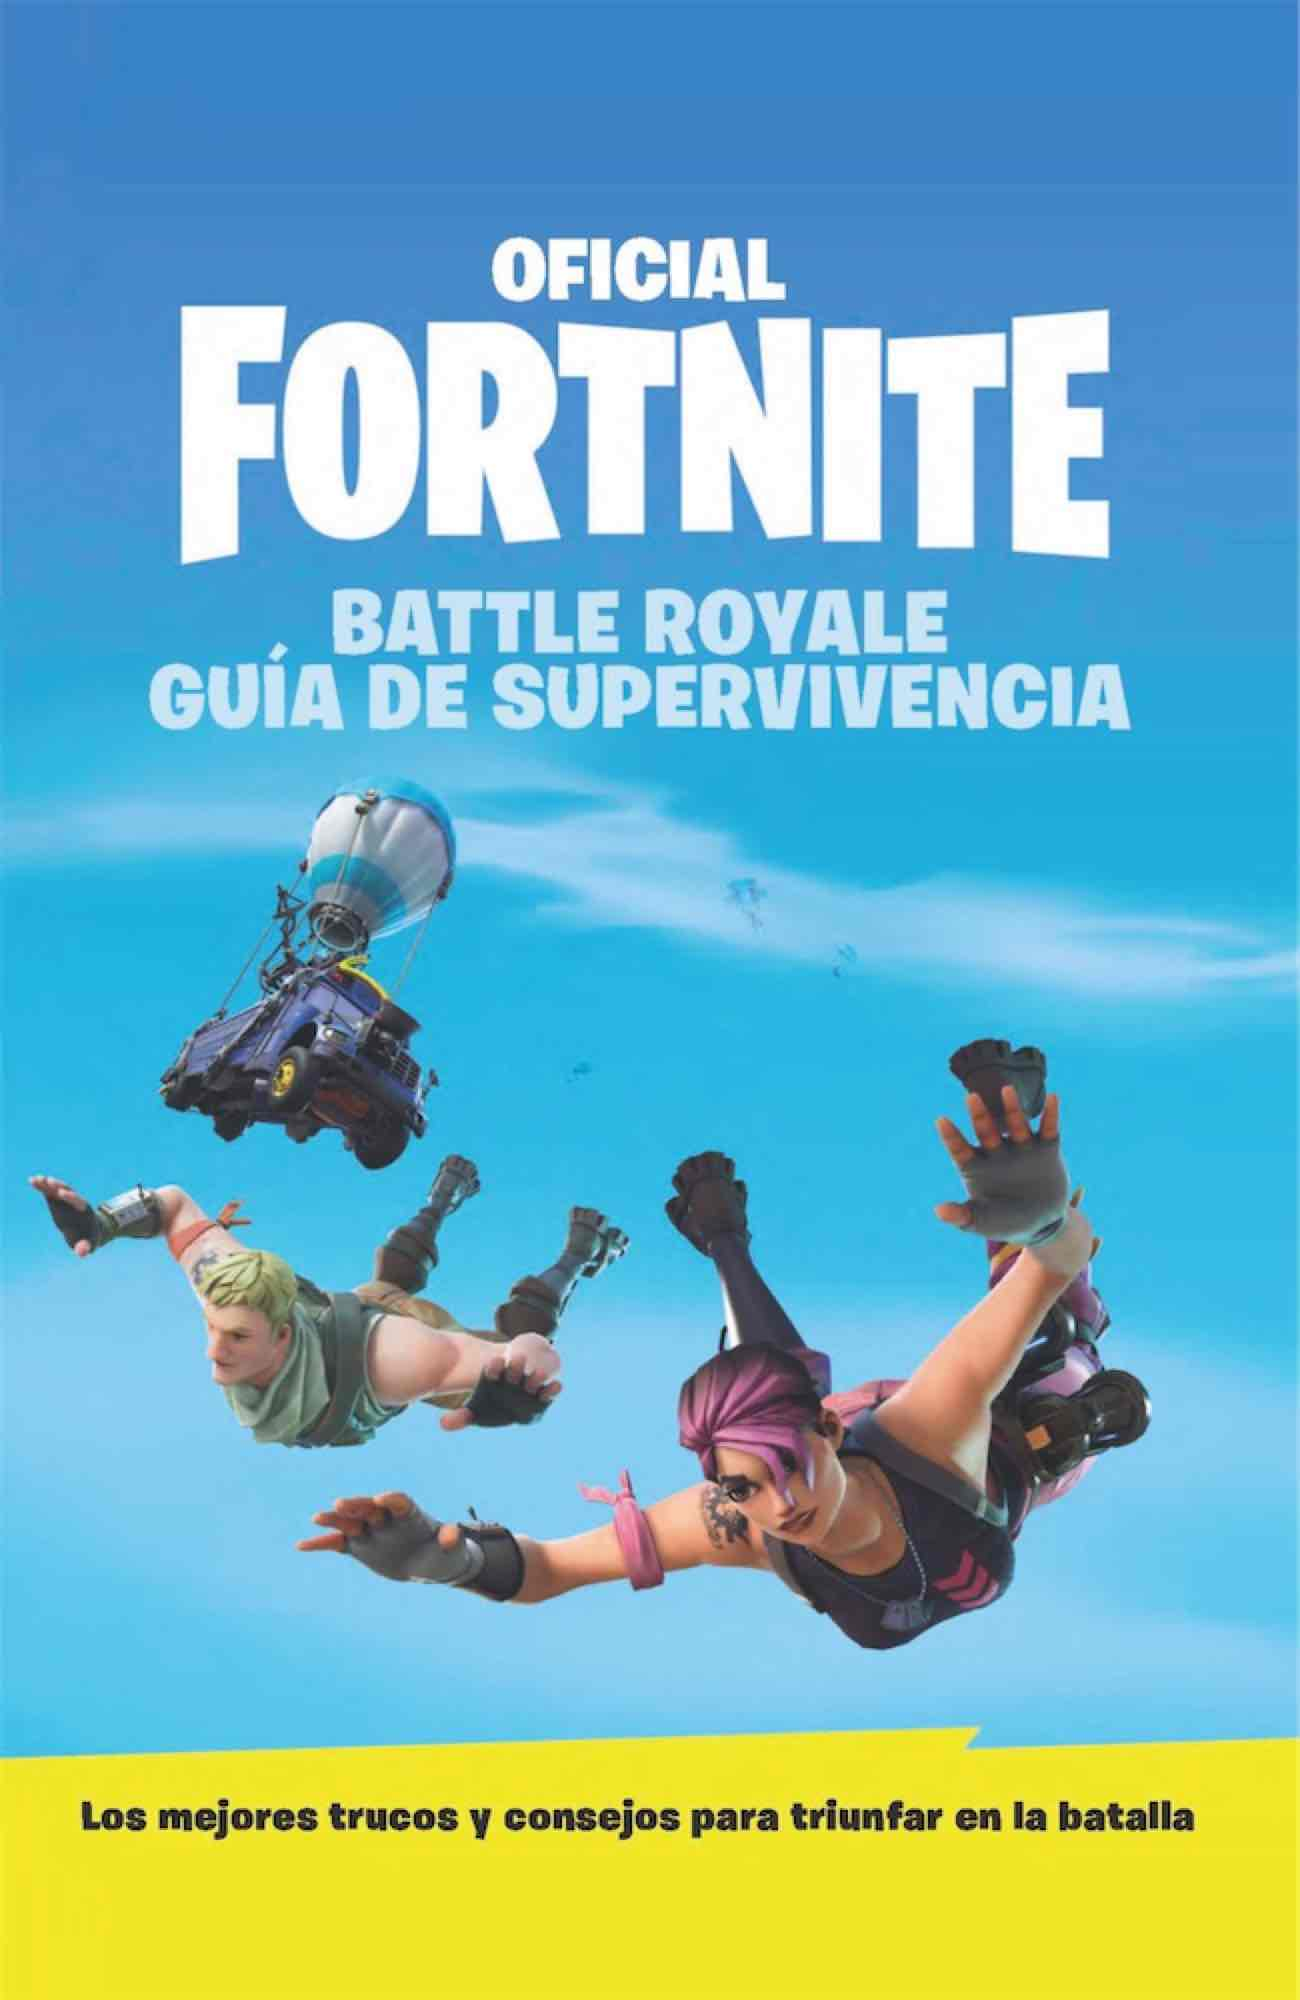 GUIA DE SUPERVIVENCIA - OFICIAL FORTNITE